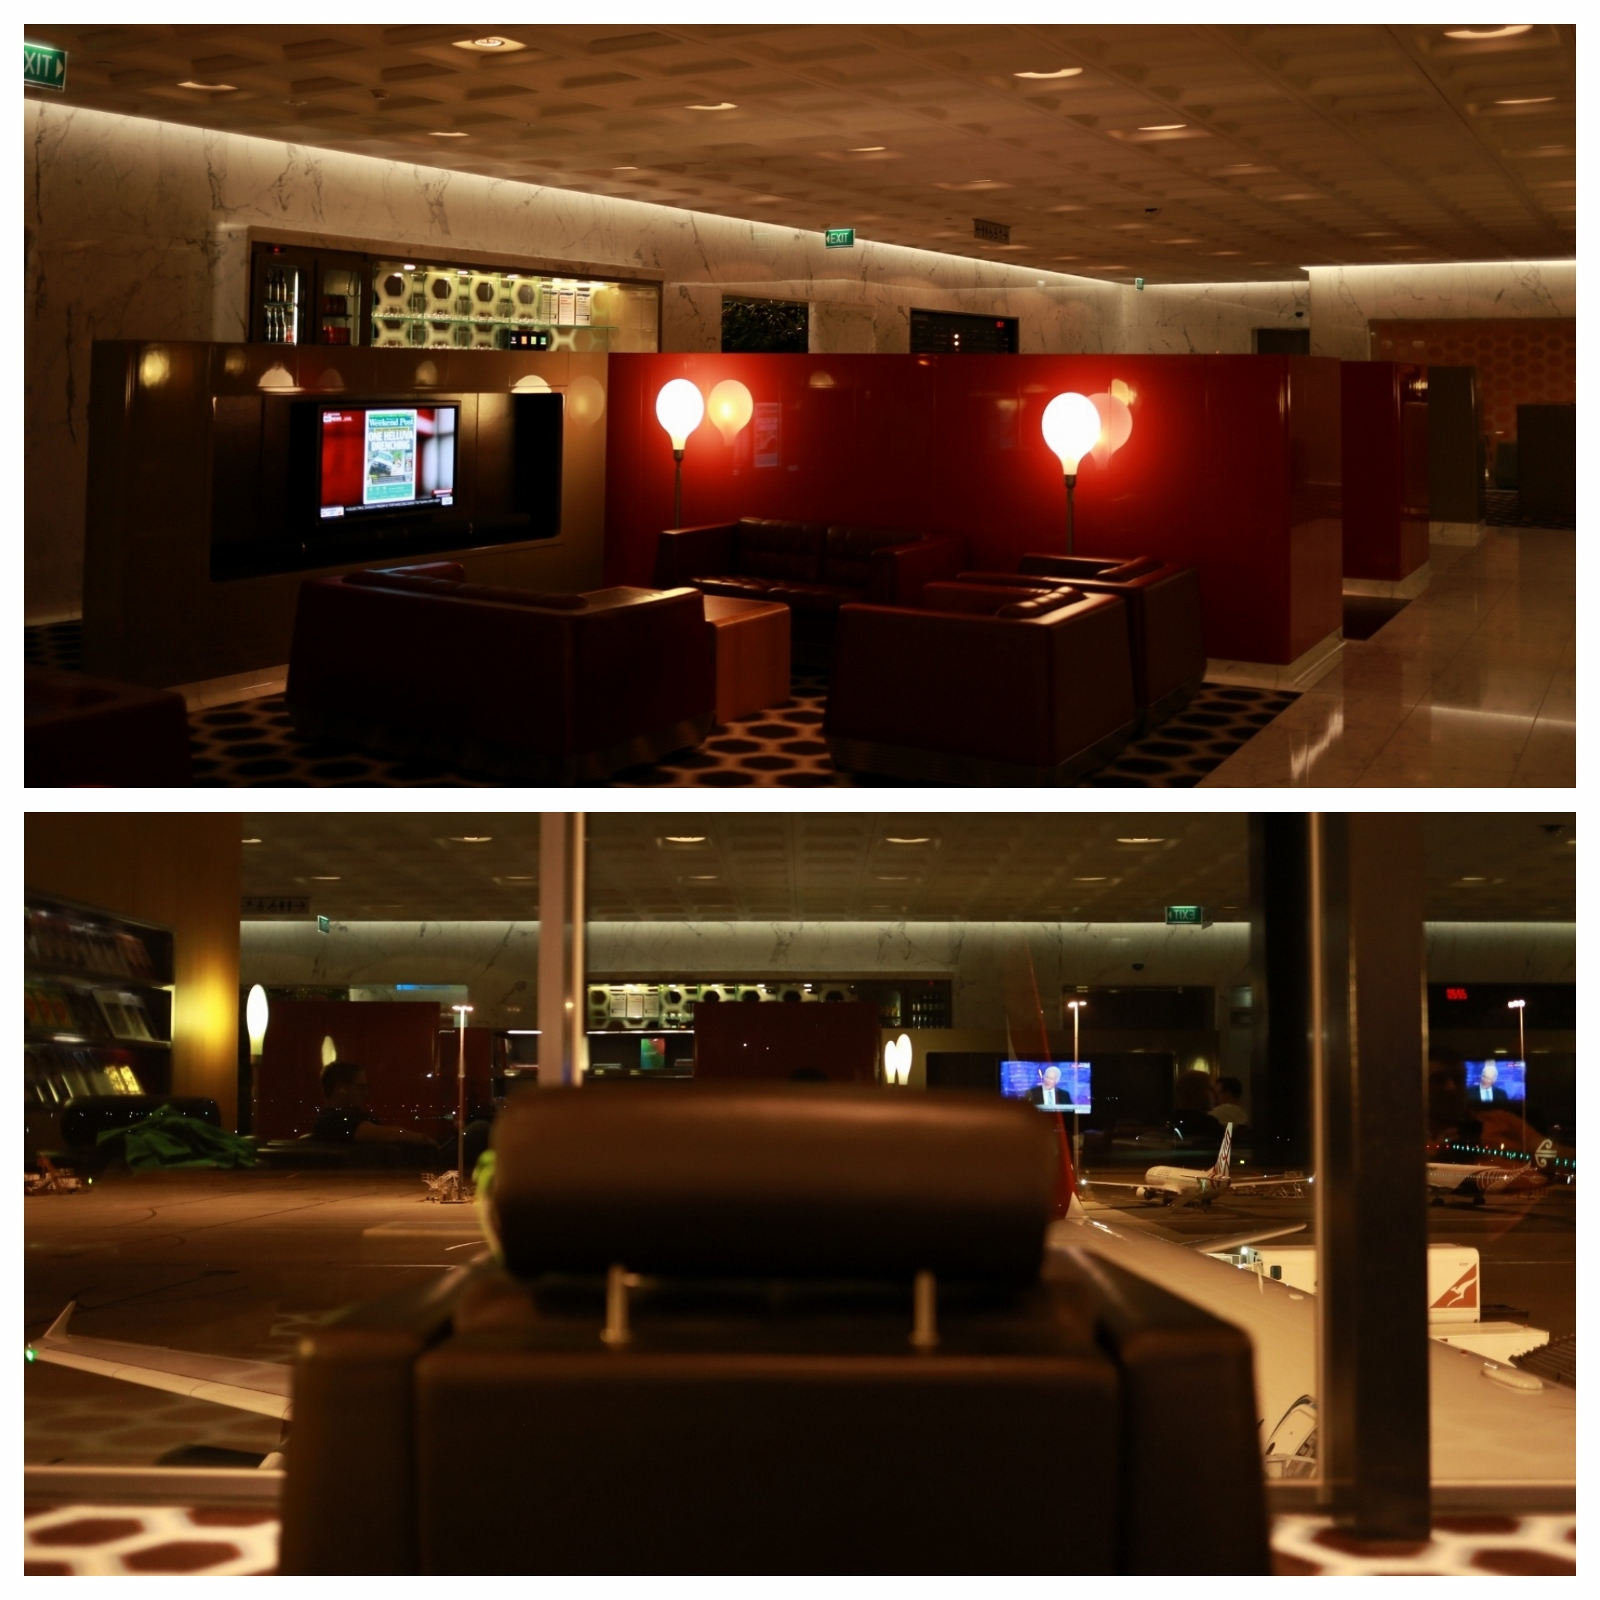 Mel_qf_first_lounge_space_1600x1600